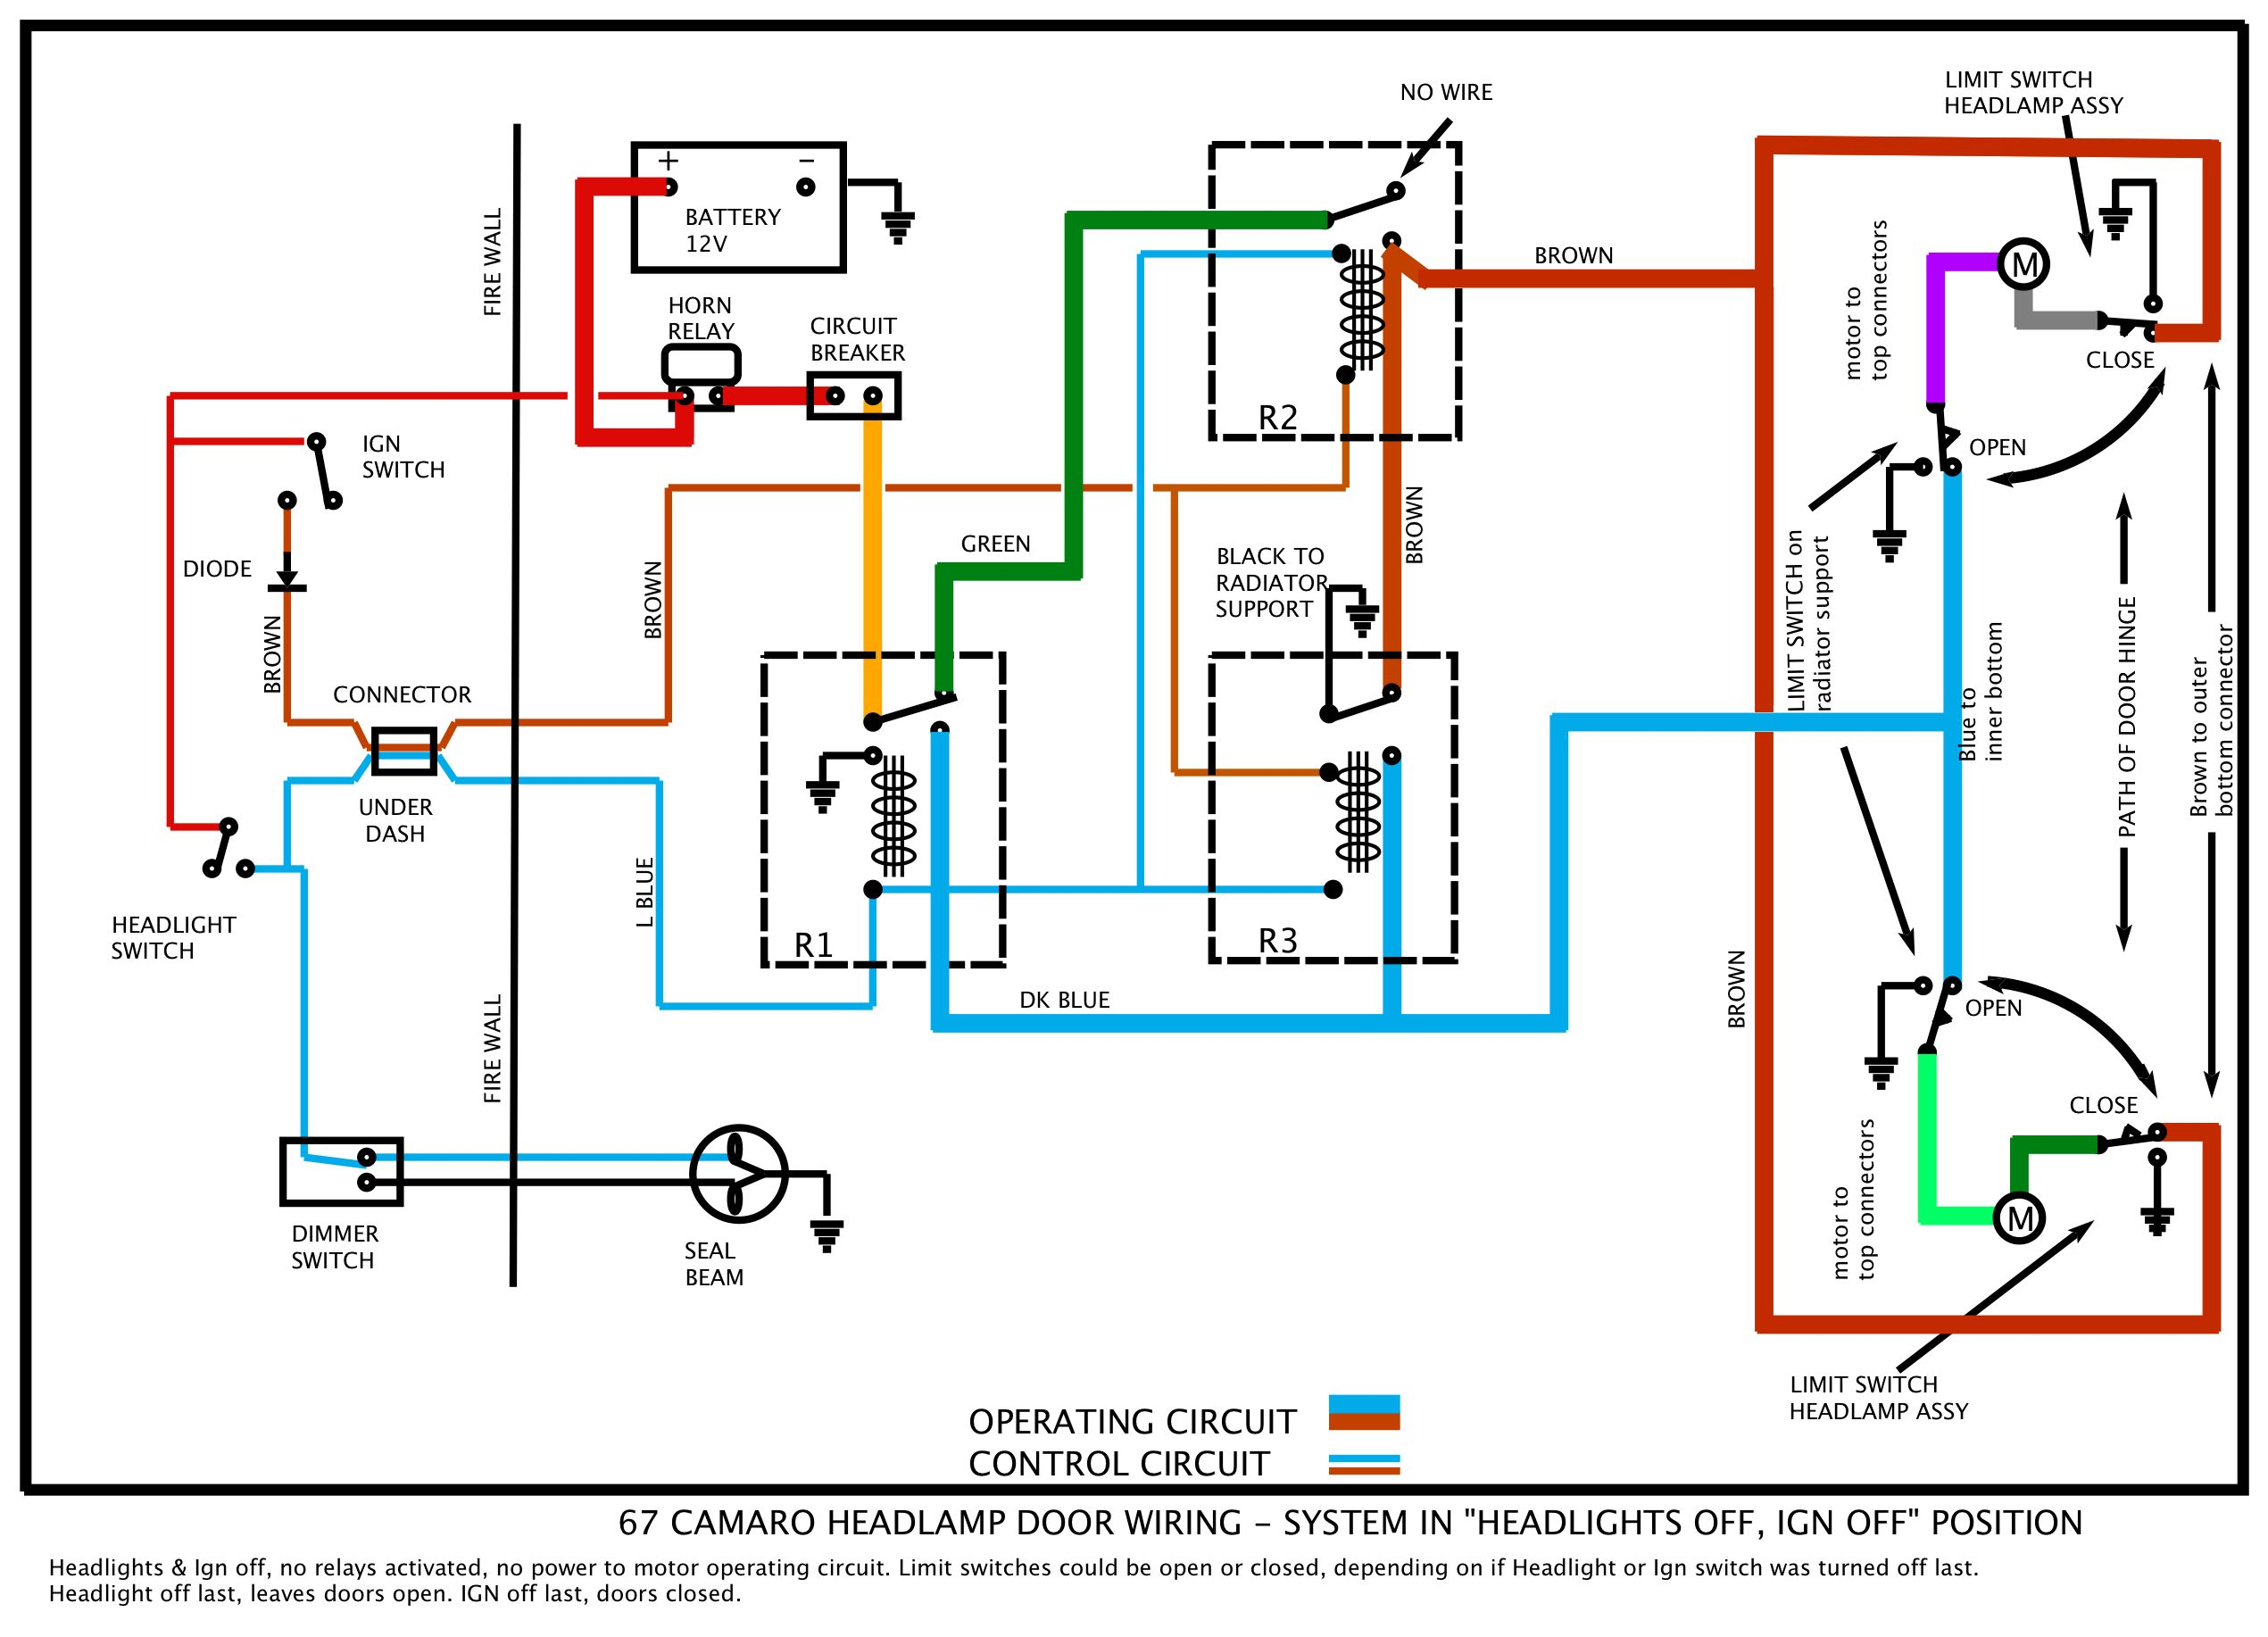 78 gm headlight switch diagram wiring diagram pictures u2022 rh mapavick co  uk Single Light Switch